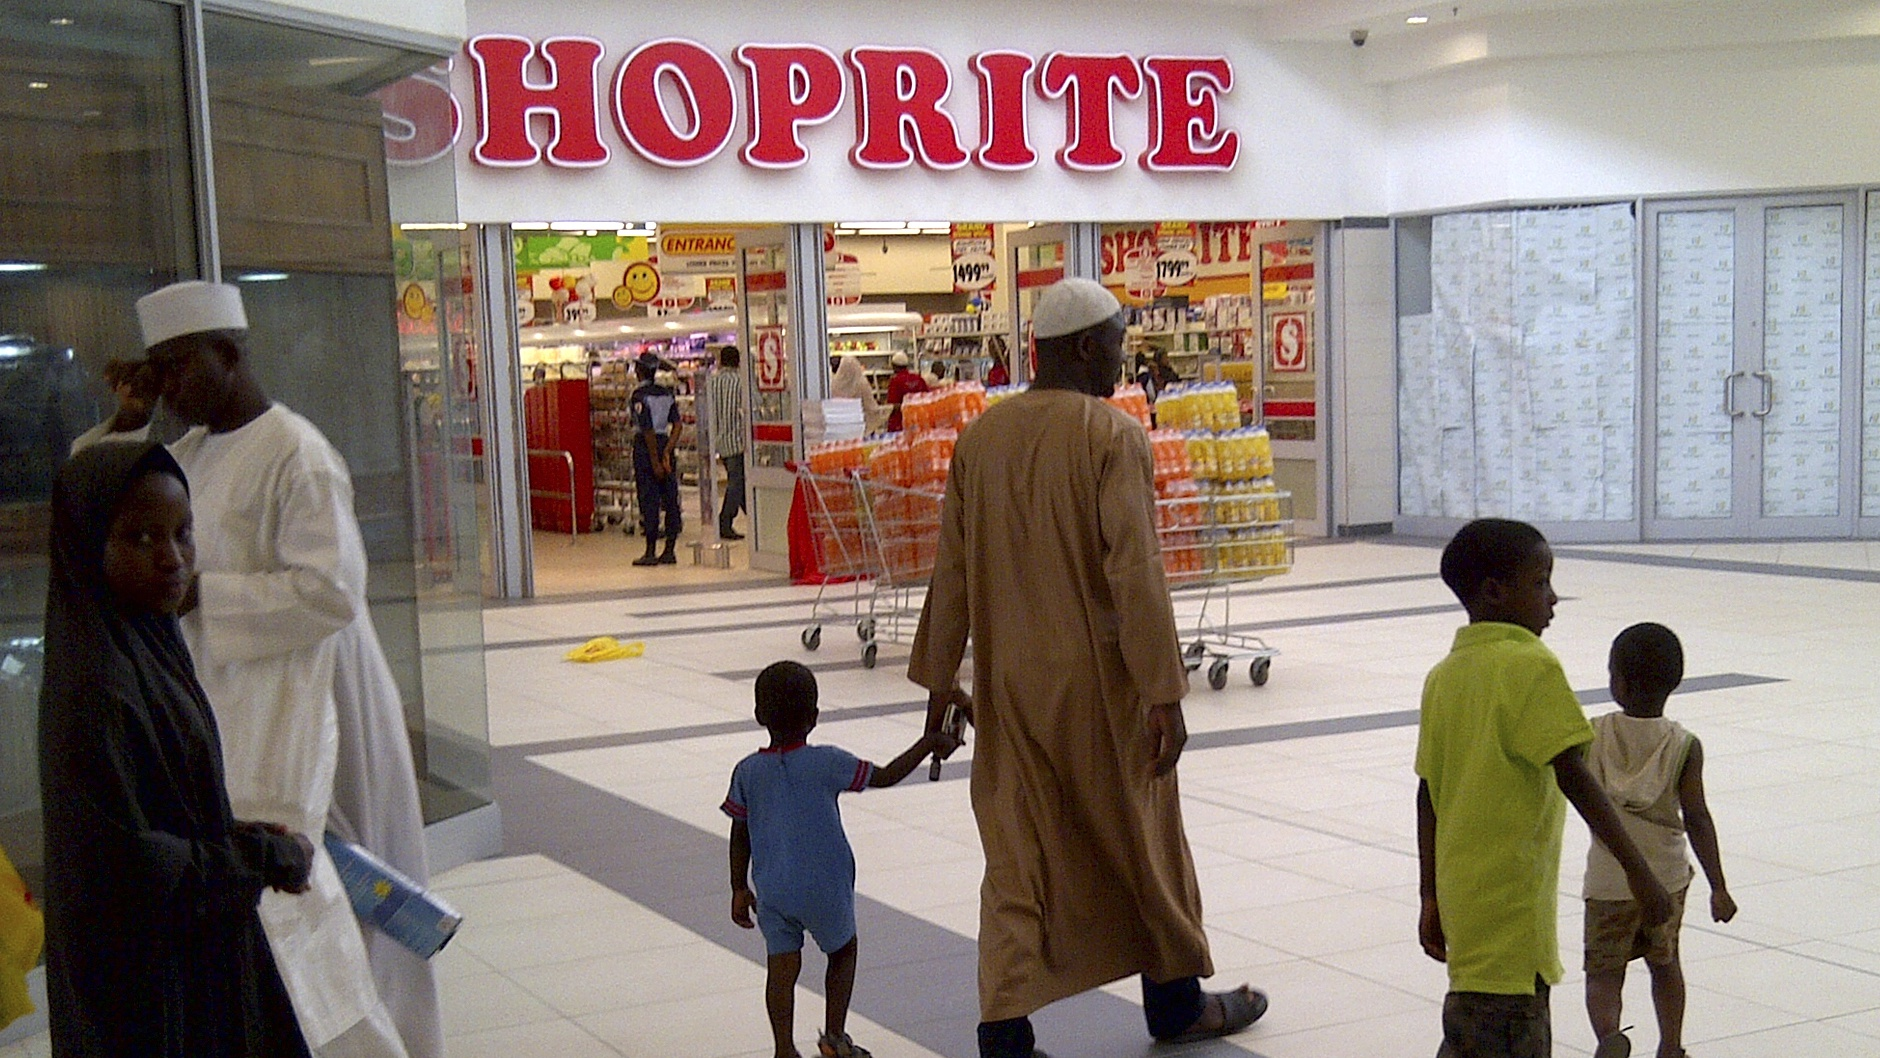 Shoprite is cementing its standing as Africa's retail giant.